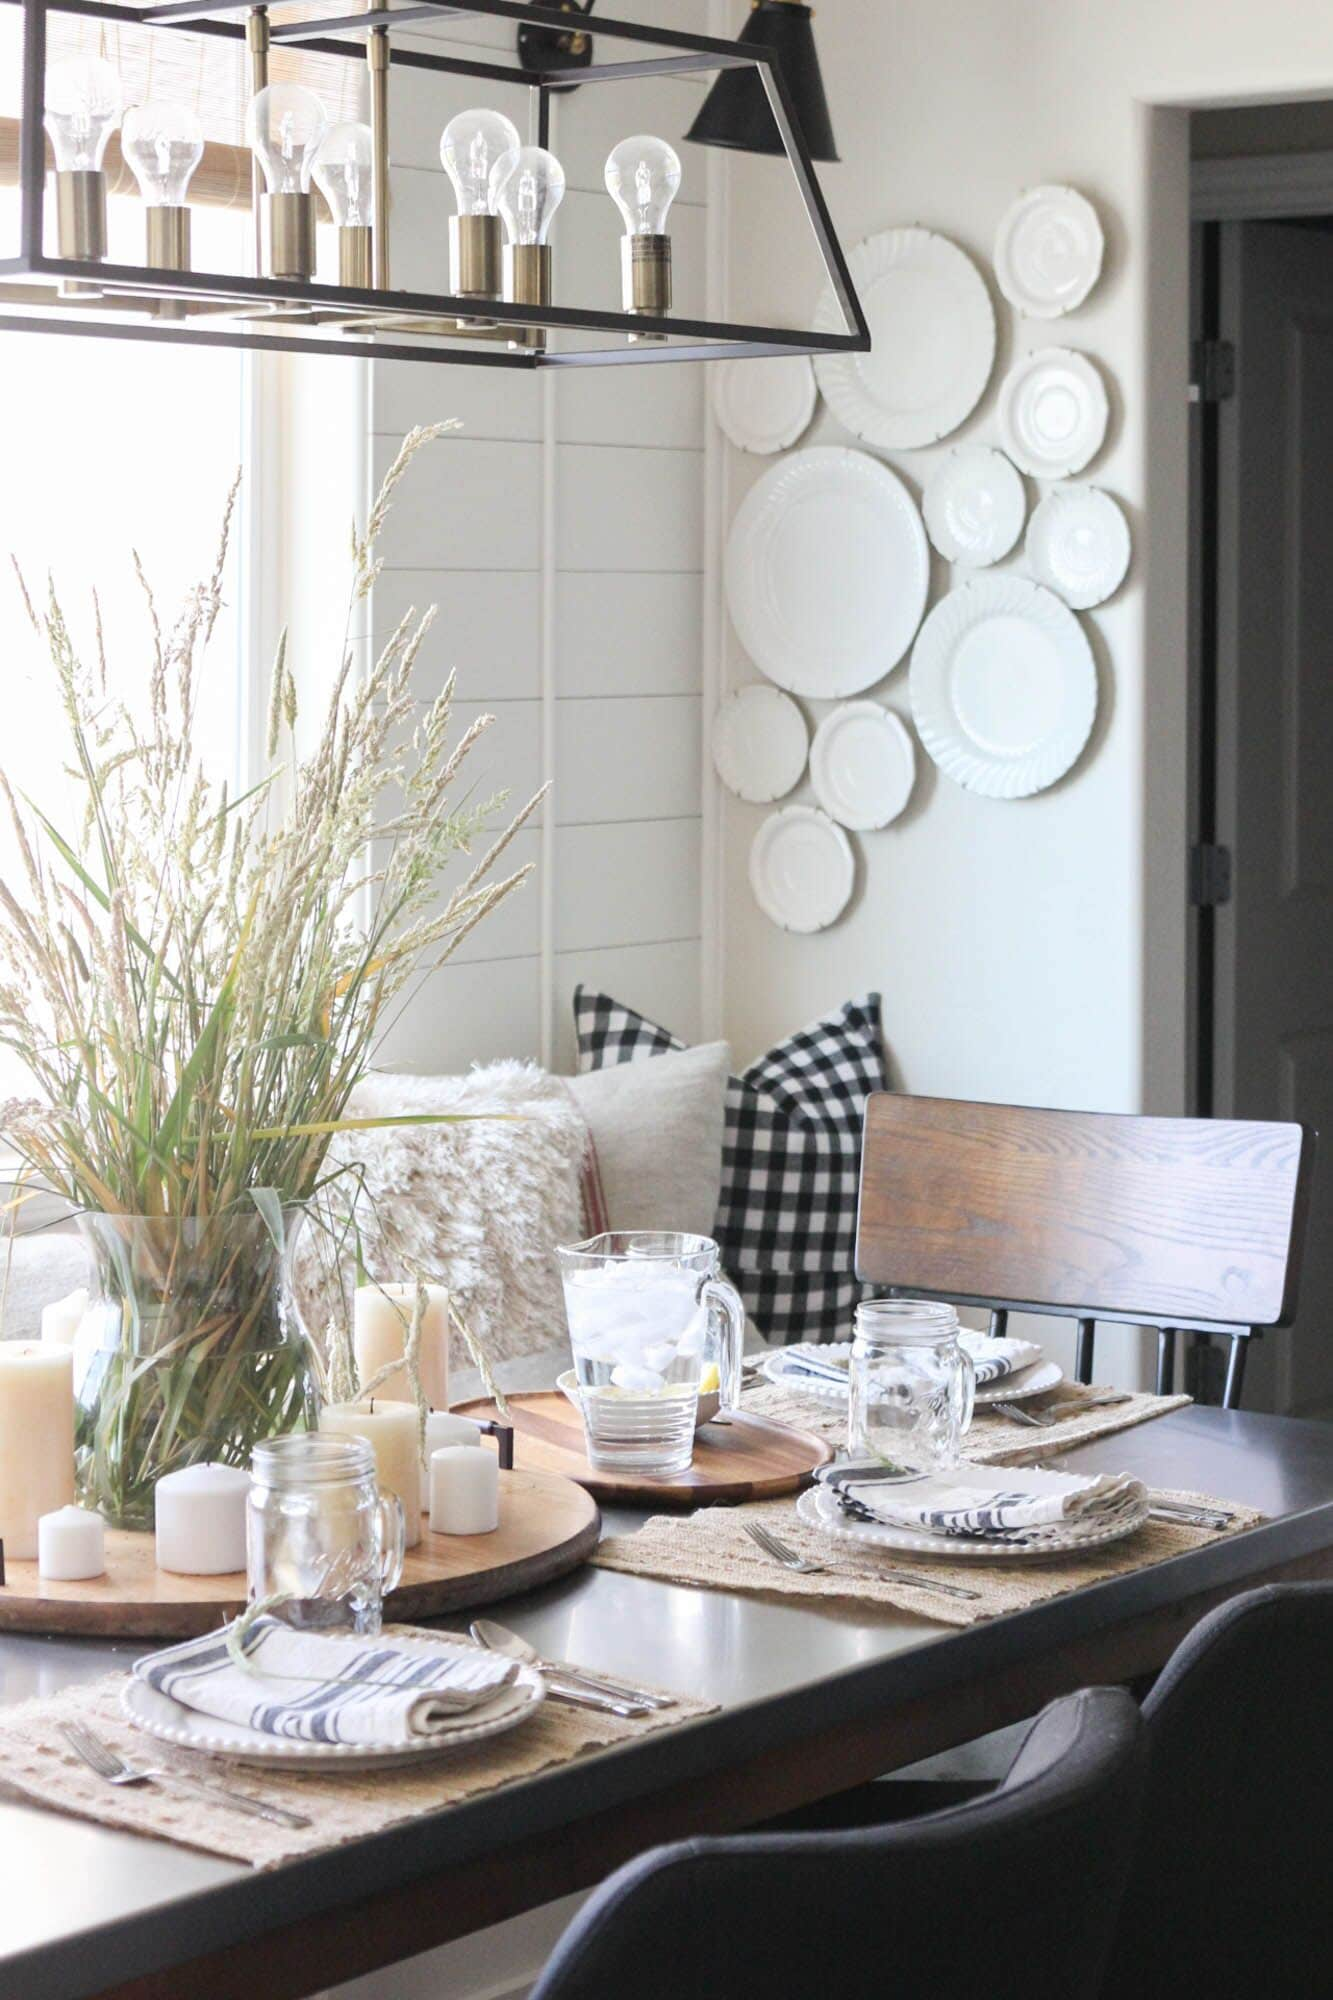 Summer Table Setting by The Wood Grain Cottage-6467